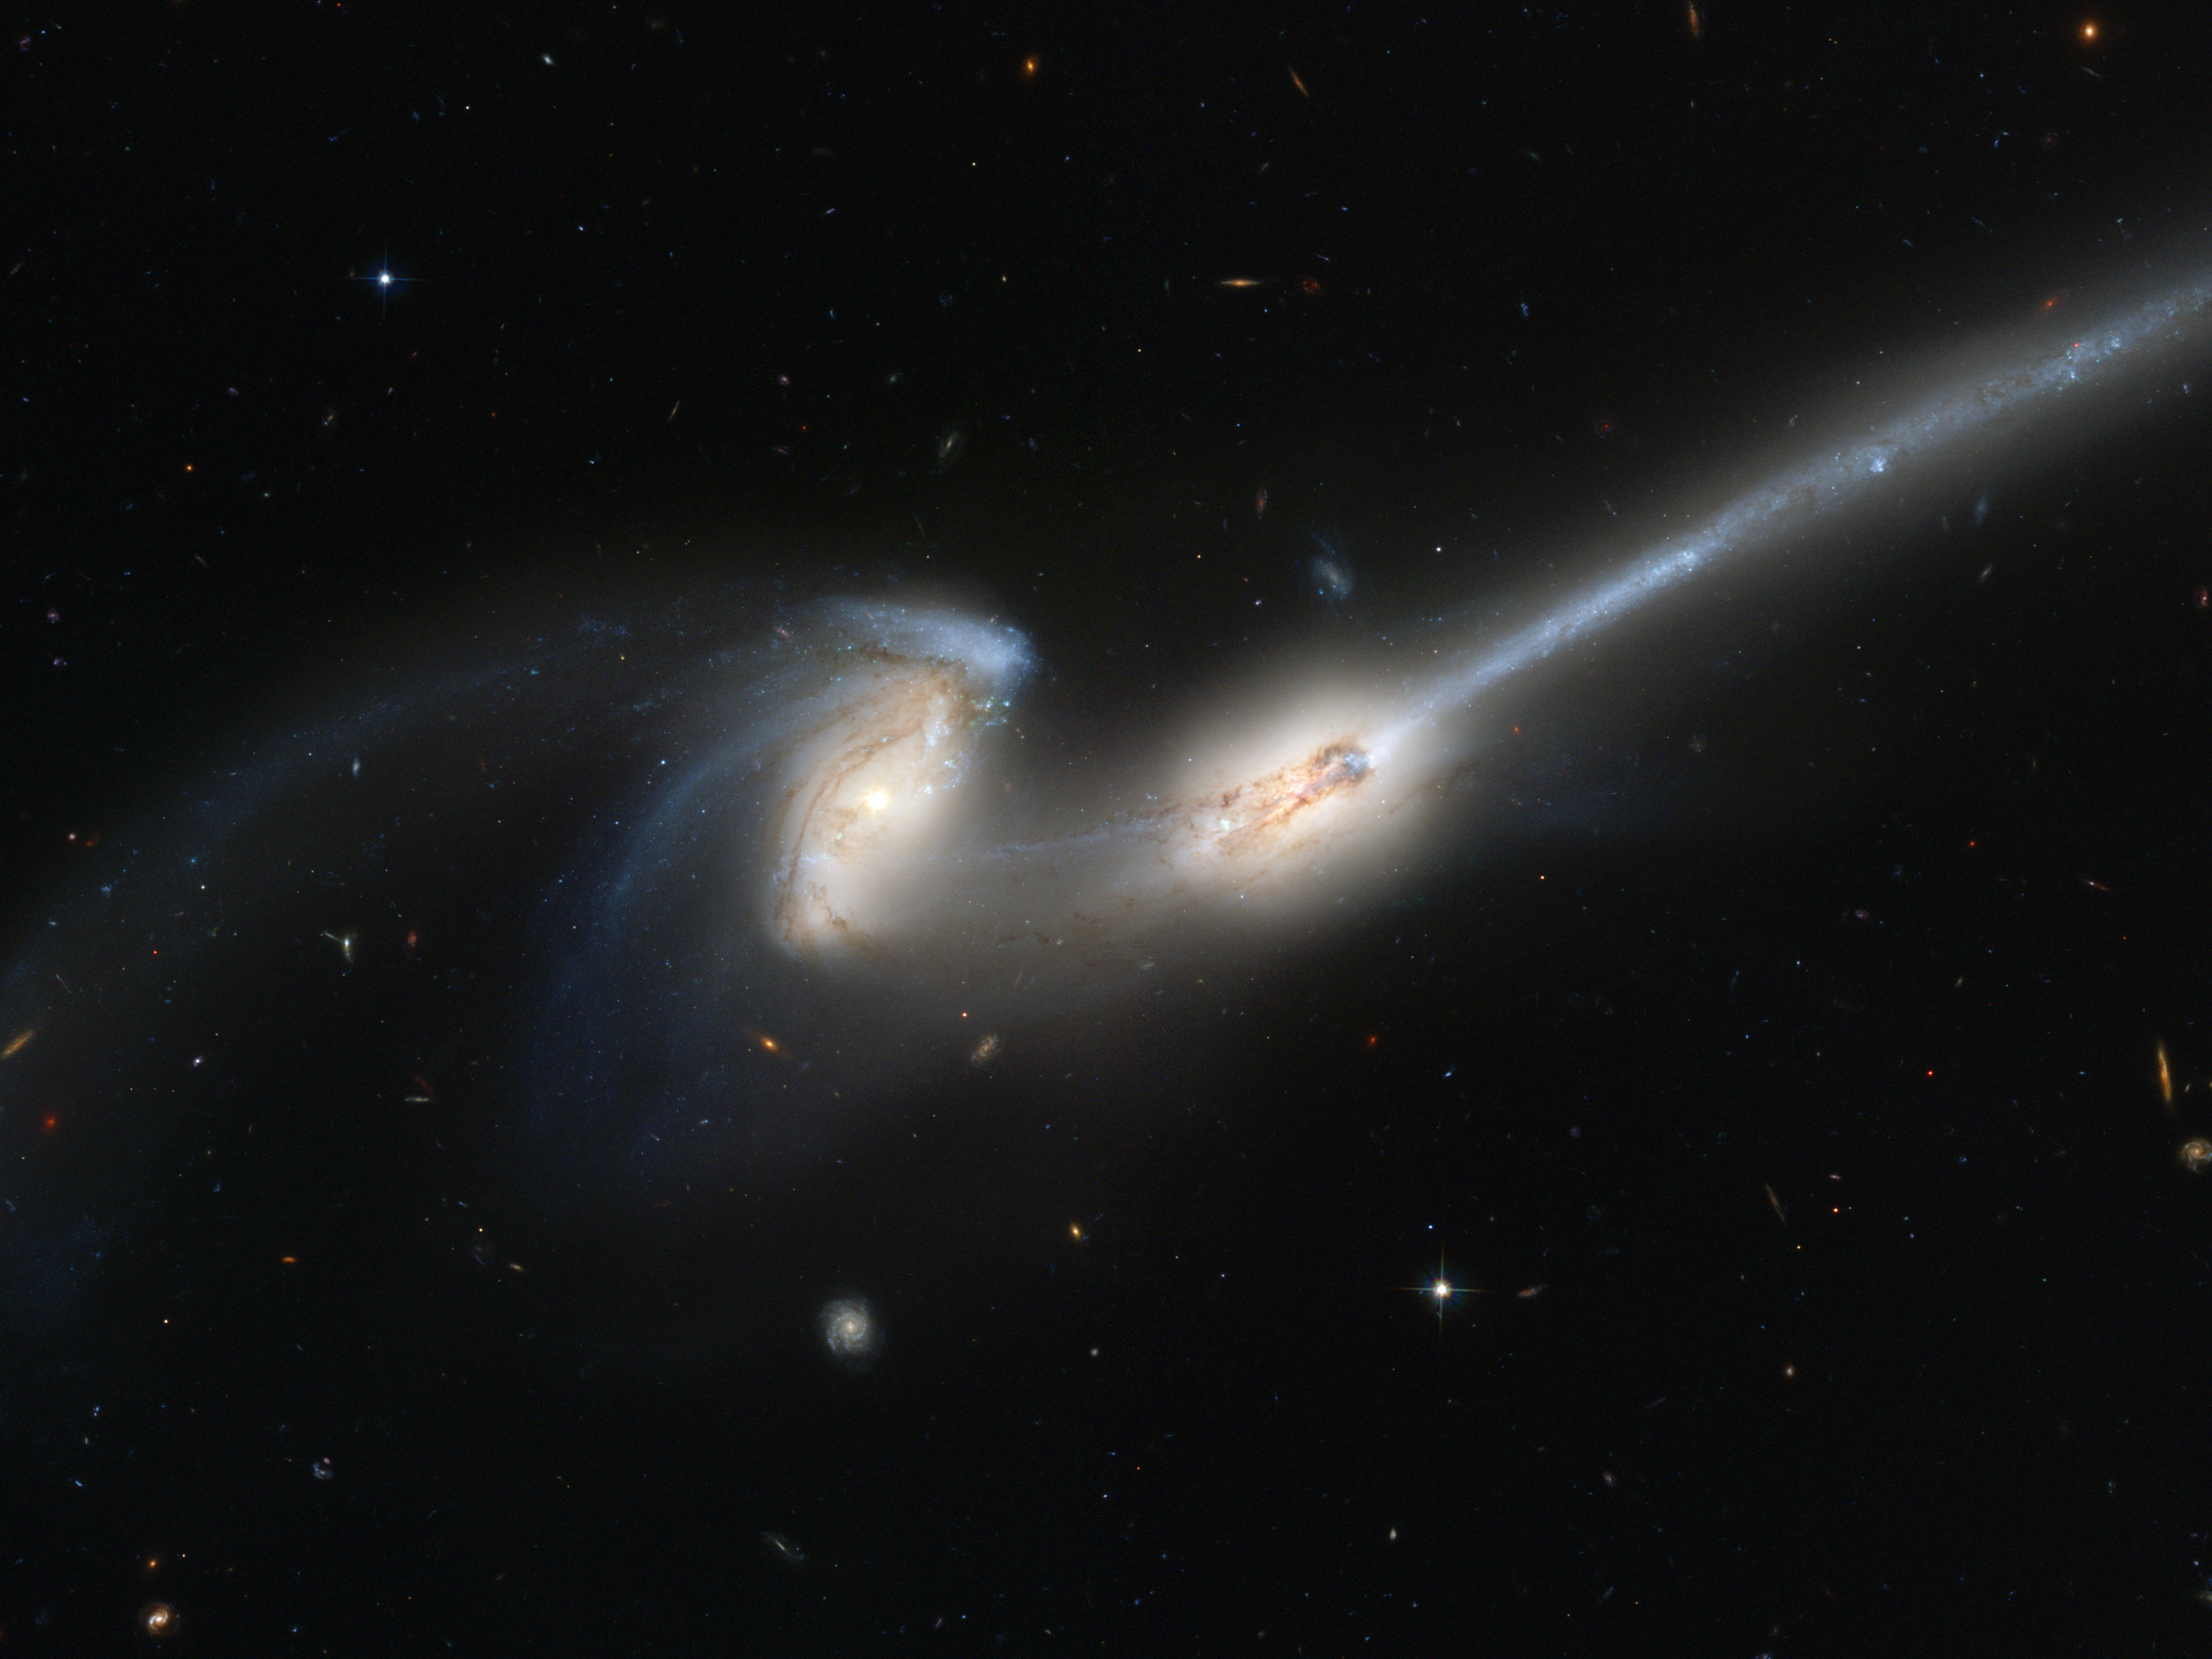 Merging_galaxies_NGC_4676_(captured_by_the_Hubble_Space_Telescope)